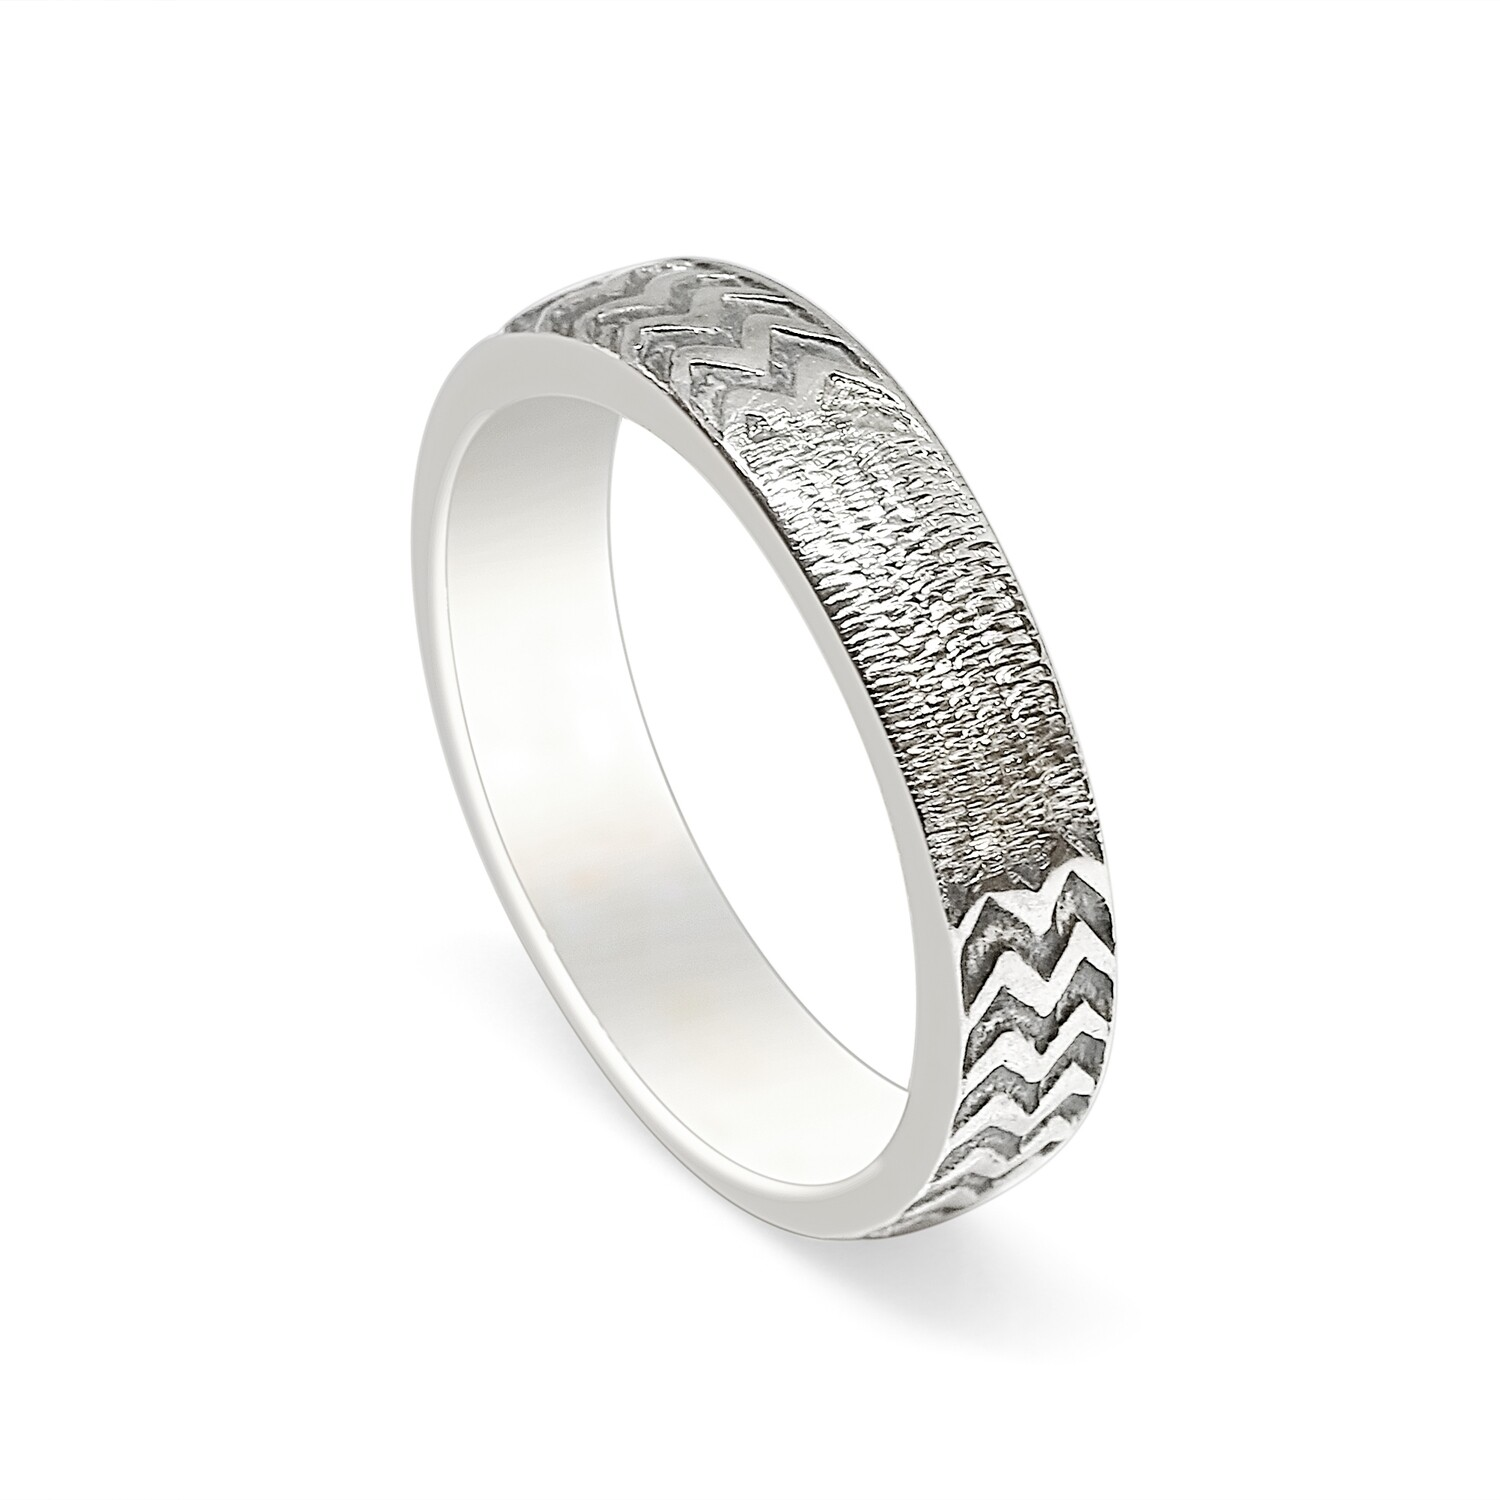 Zig Zag Hammered Ring Sterling Silver 925